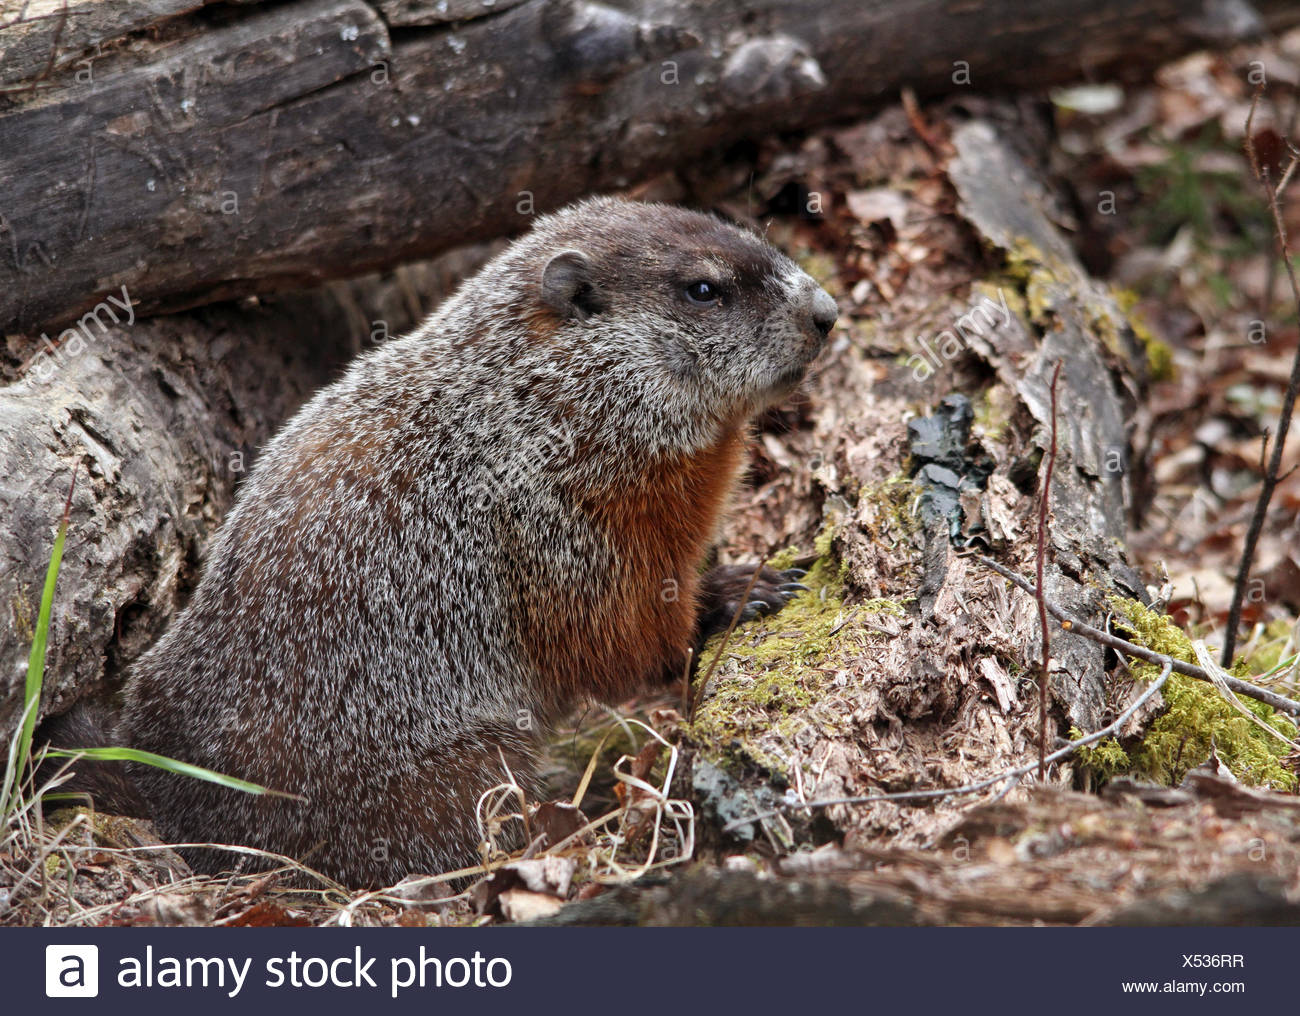 Woodchuck, Marmota monax,  in a northern forest at Prince Albert National Park, Saskatchewan, Canada - Stock Image